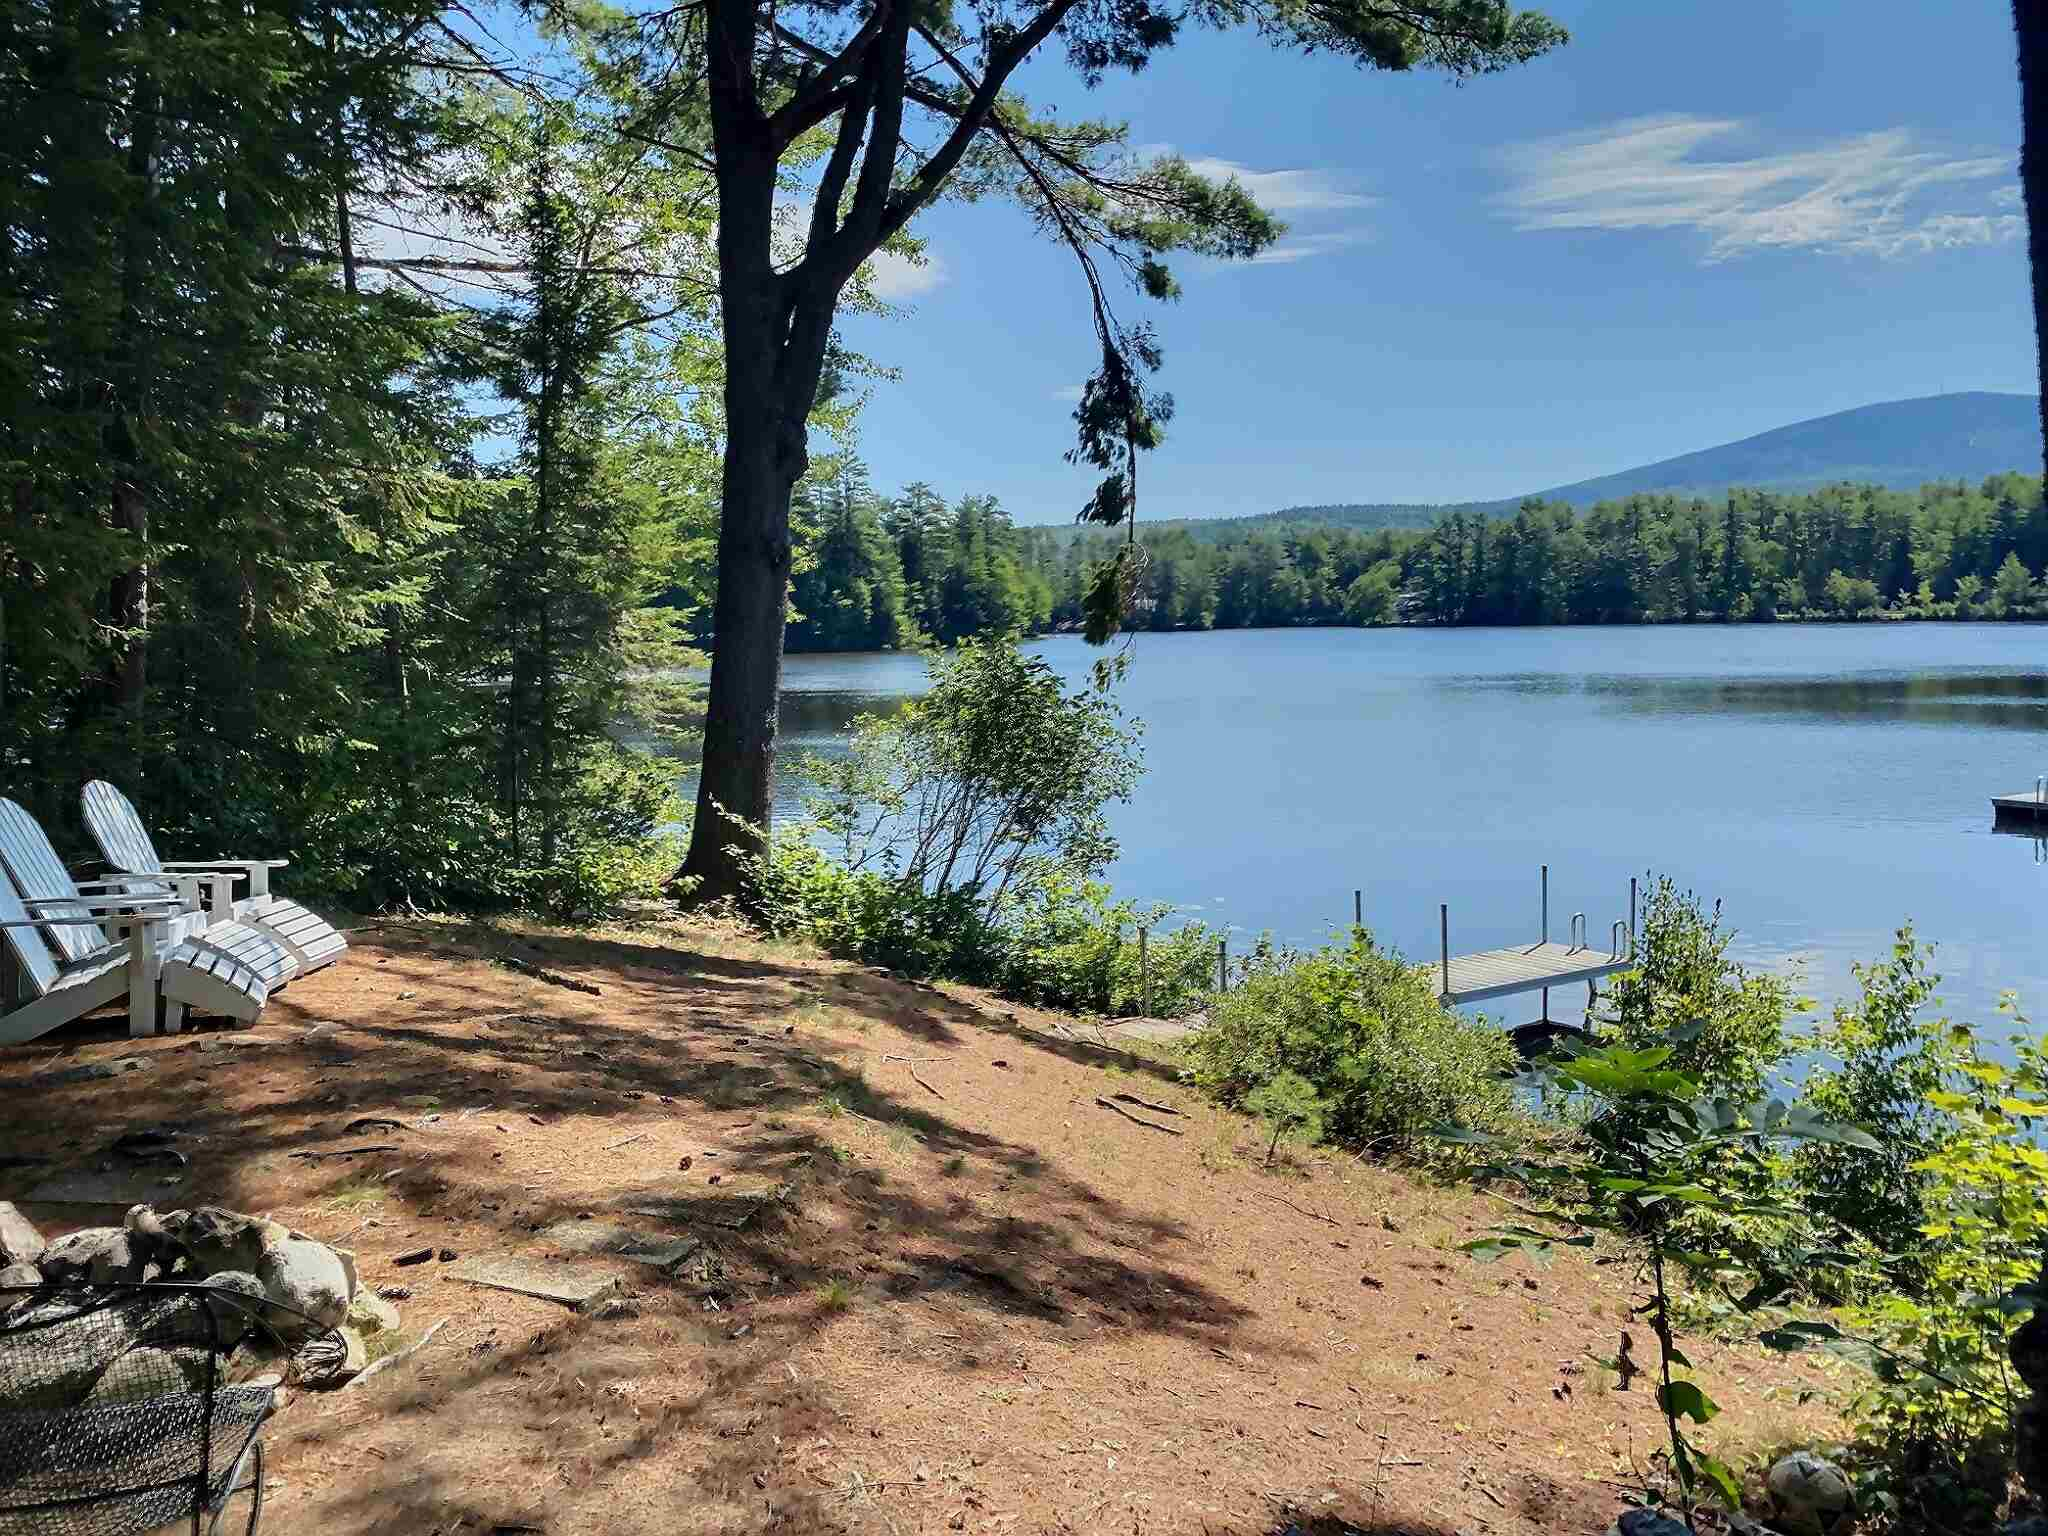 MLS 4824504: 8 Quiet Cove Lane, Wilmot NH